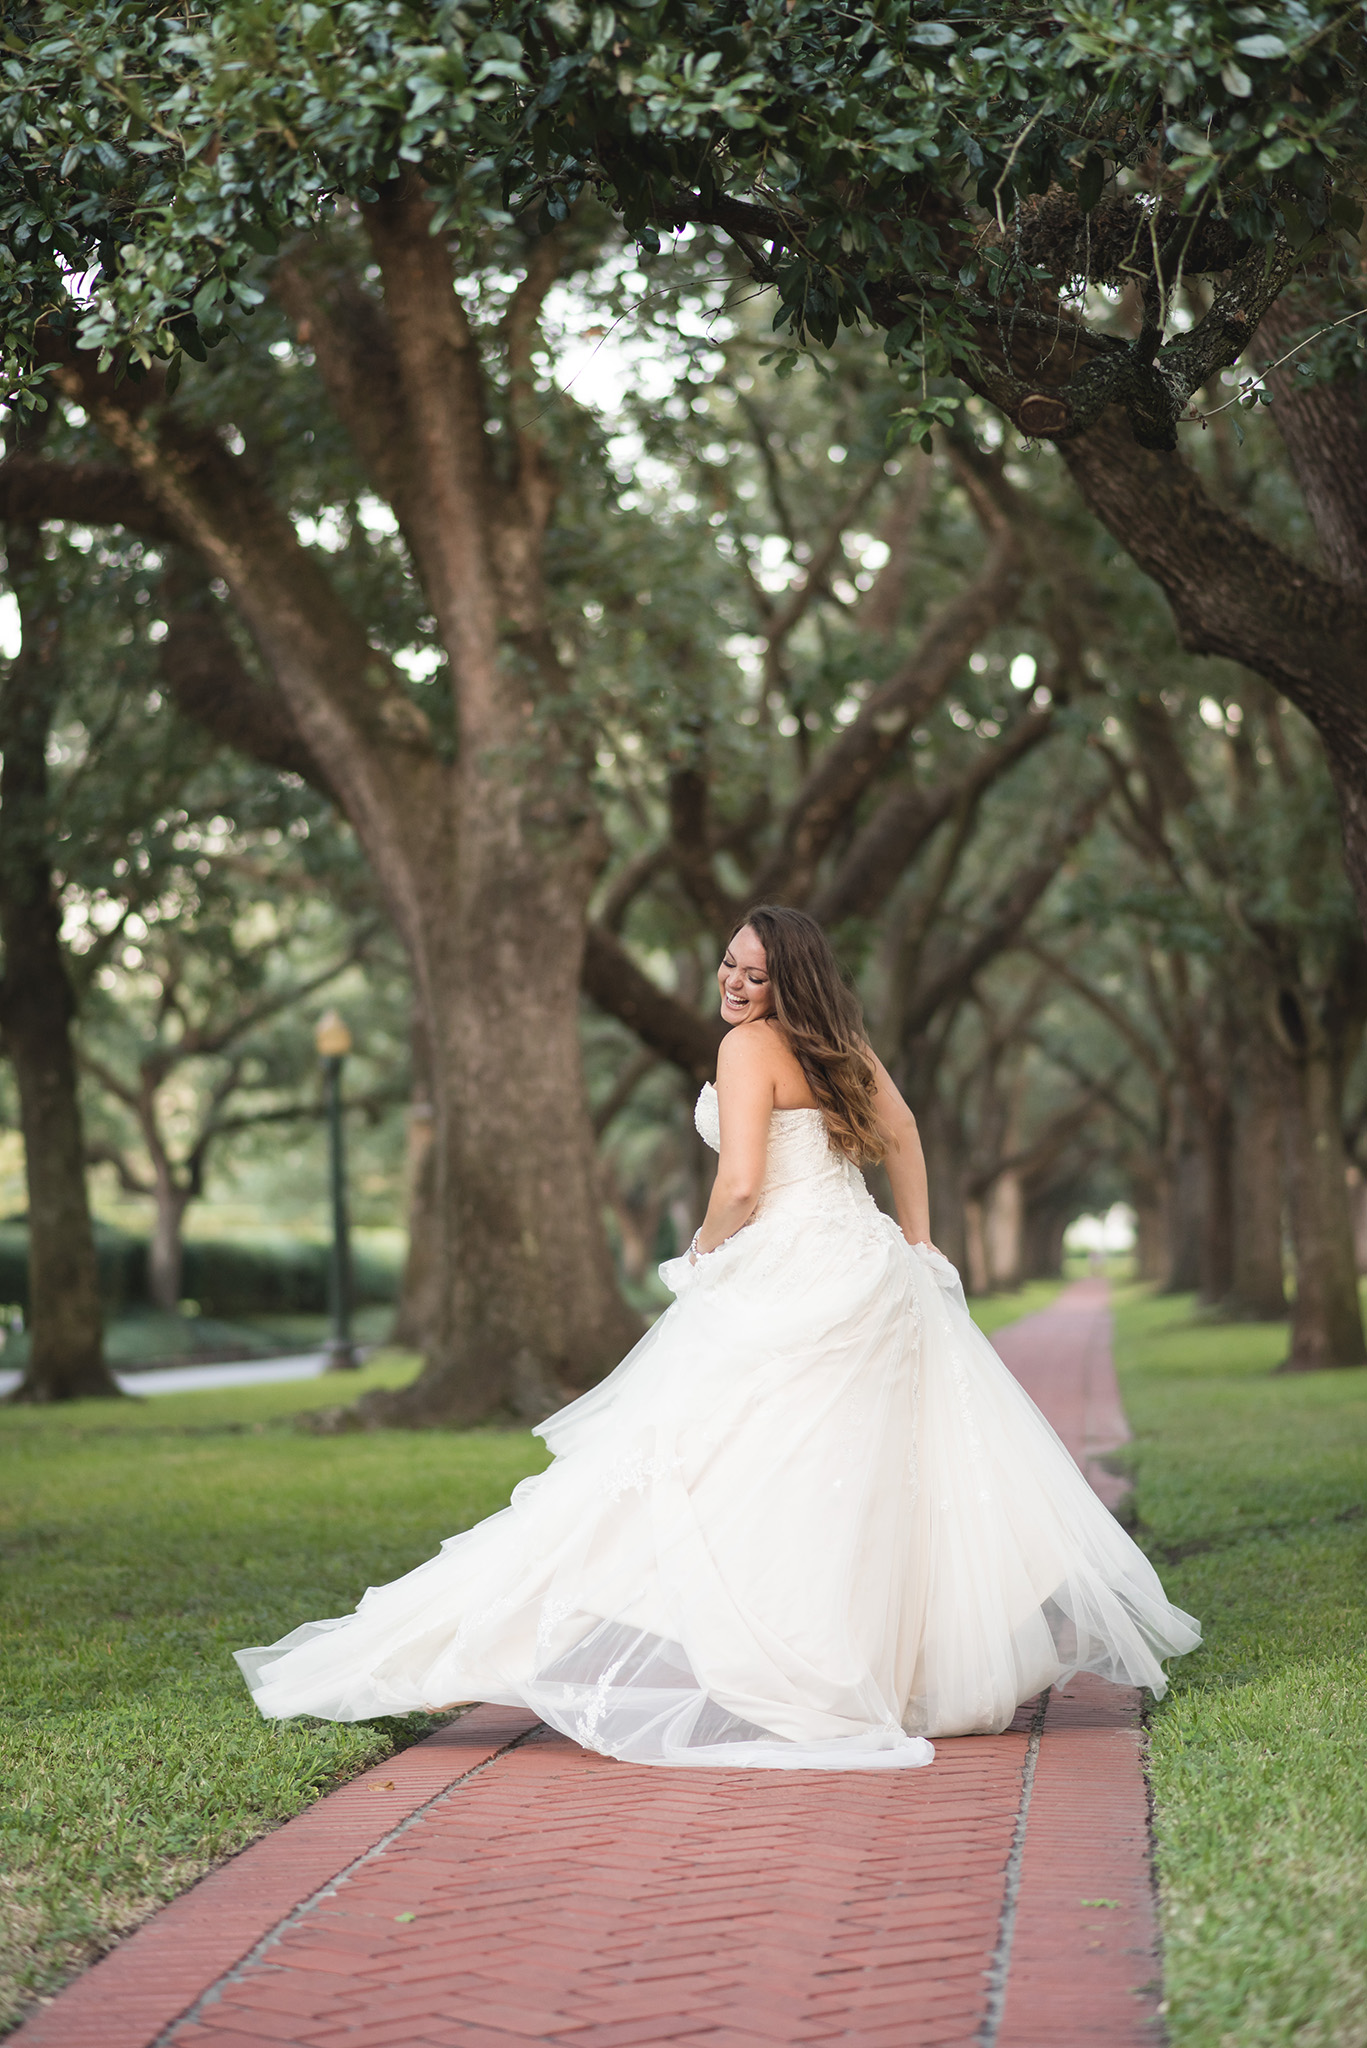 Boulevard-Oaks-Houston-Bridal-photo-session-kim-53.jpg